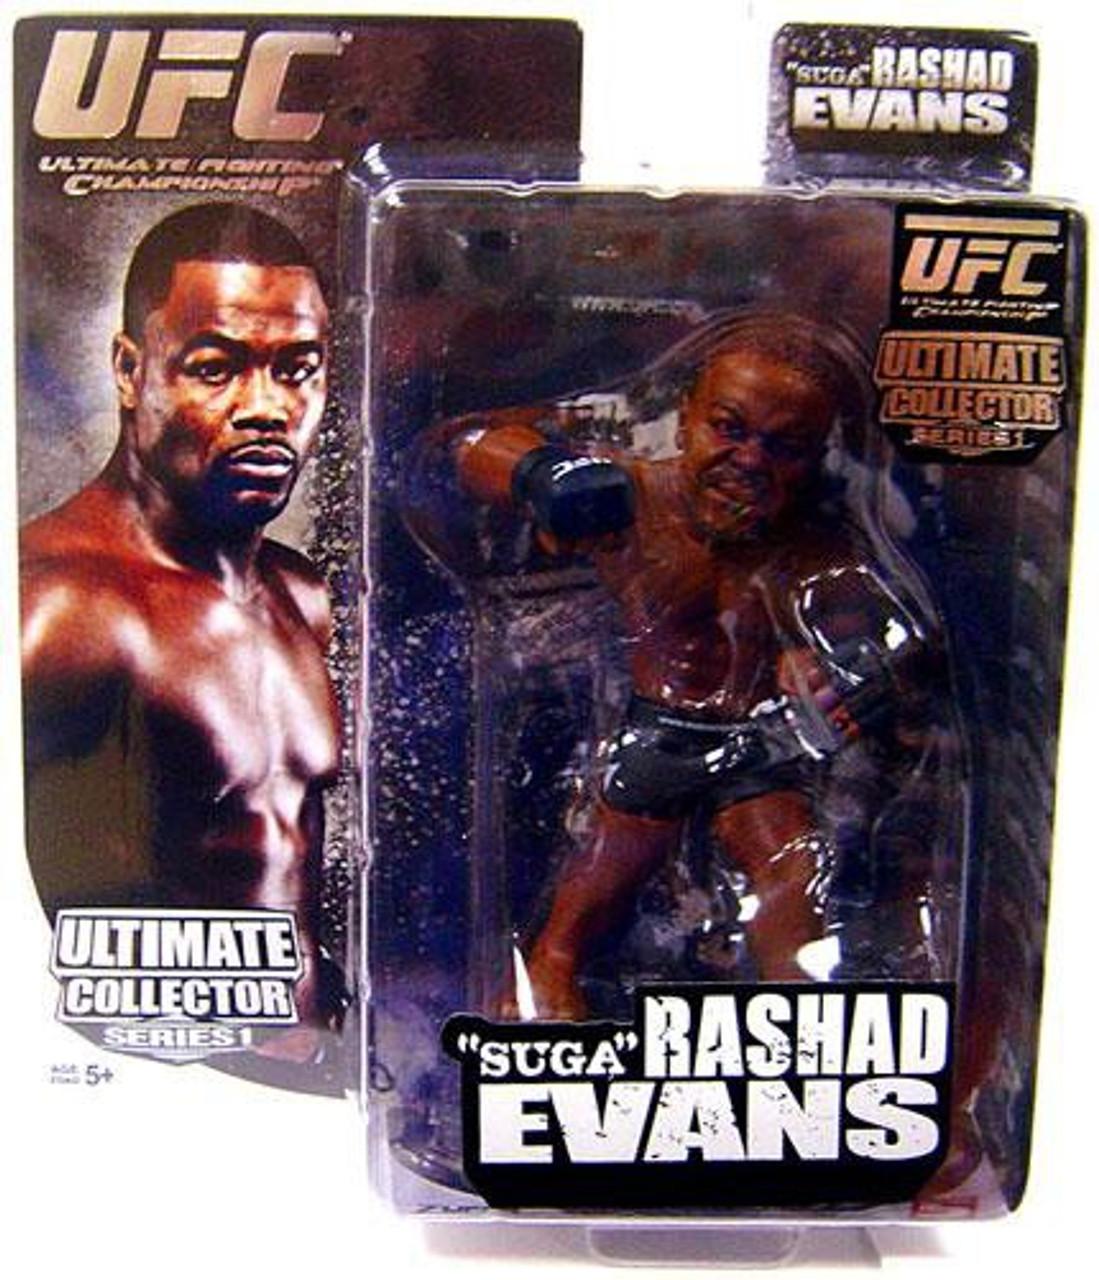 UFC Ultimate Collector Series 1 Rashad Evans Action Figure